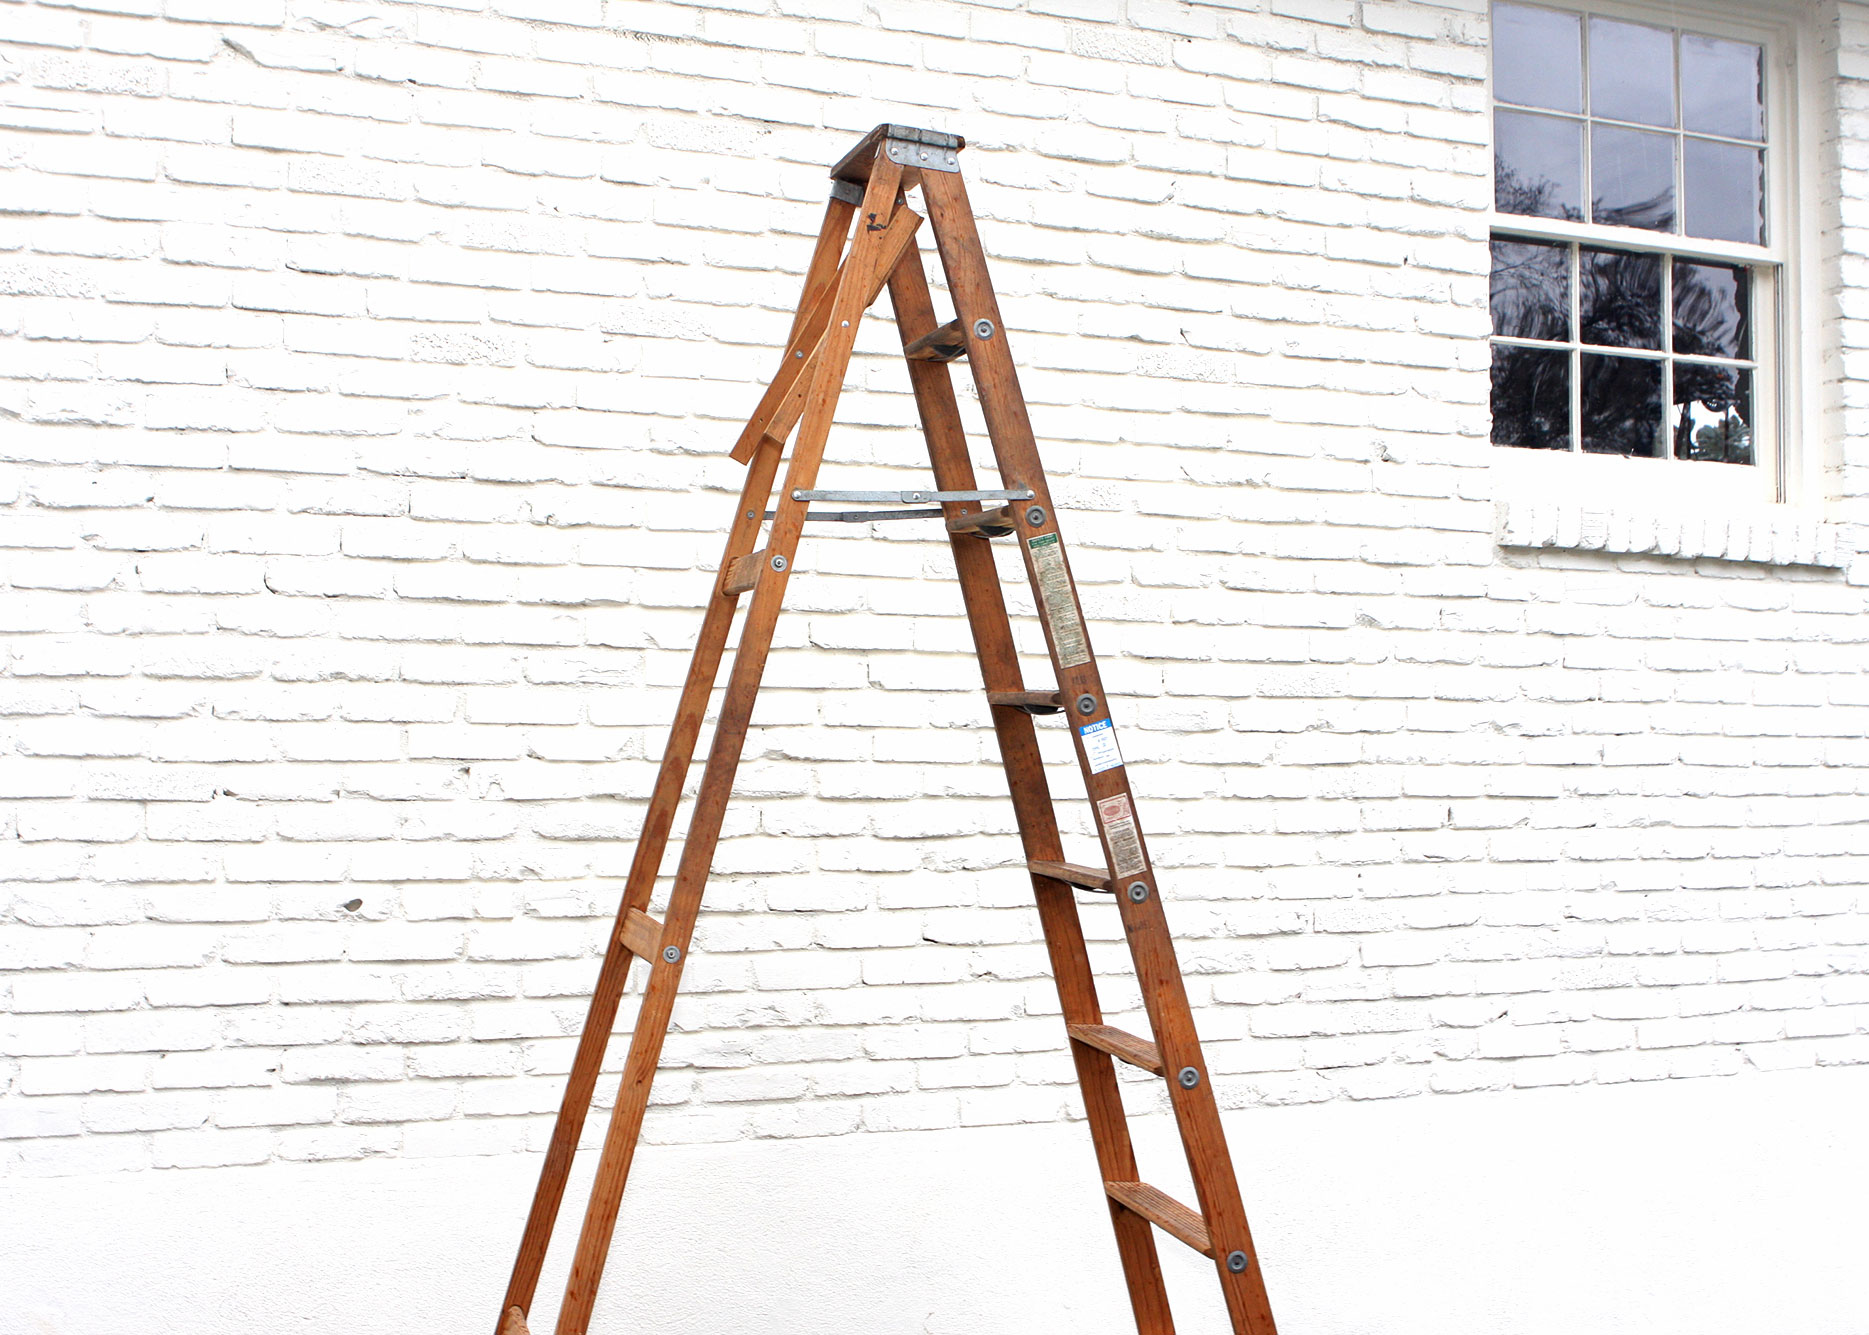 8 Ft Wooden Ladder